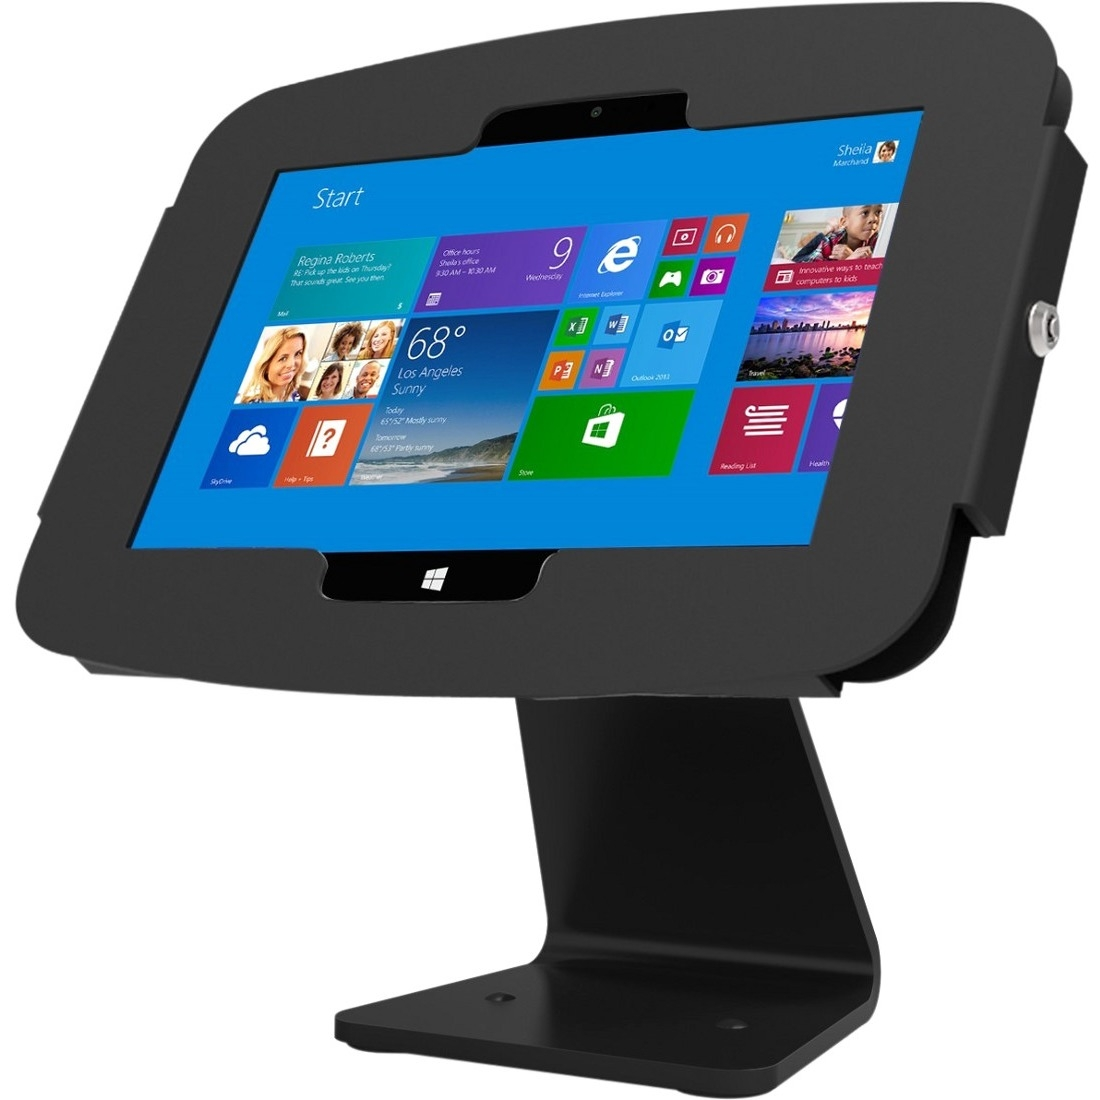 Compulocks Space Surface Tablet Enclosure 360 Kiosk - Surface Kiosk - Surface Pro Enclosure - Black (303b540geb)